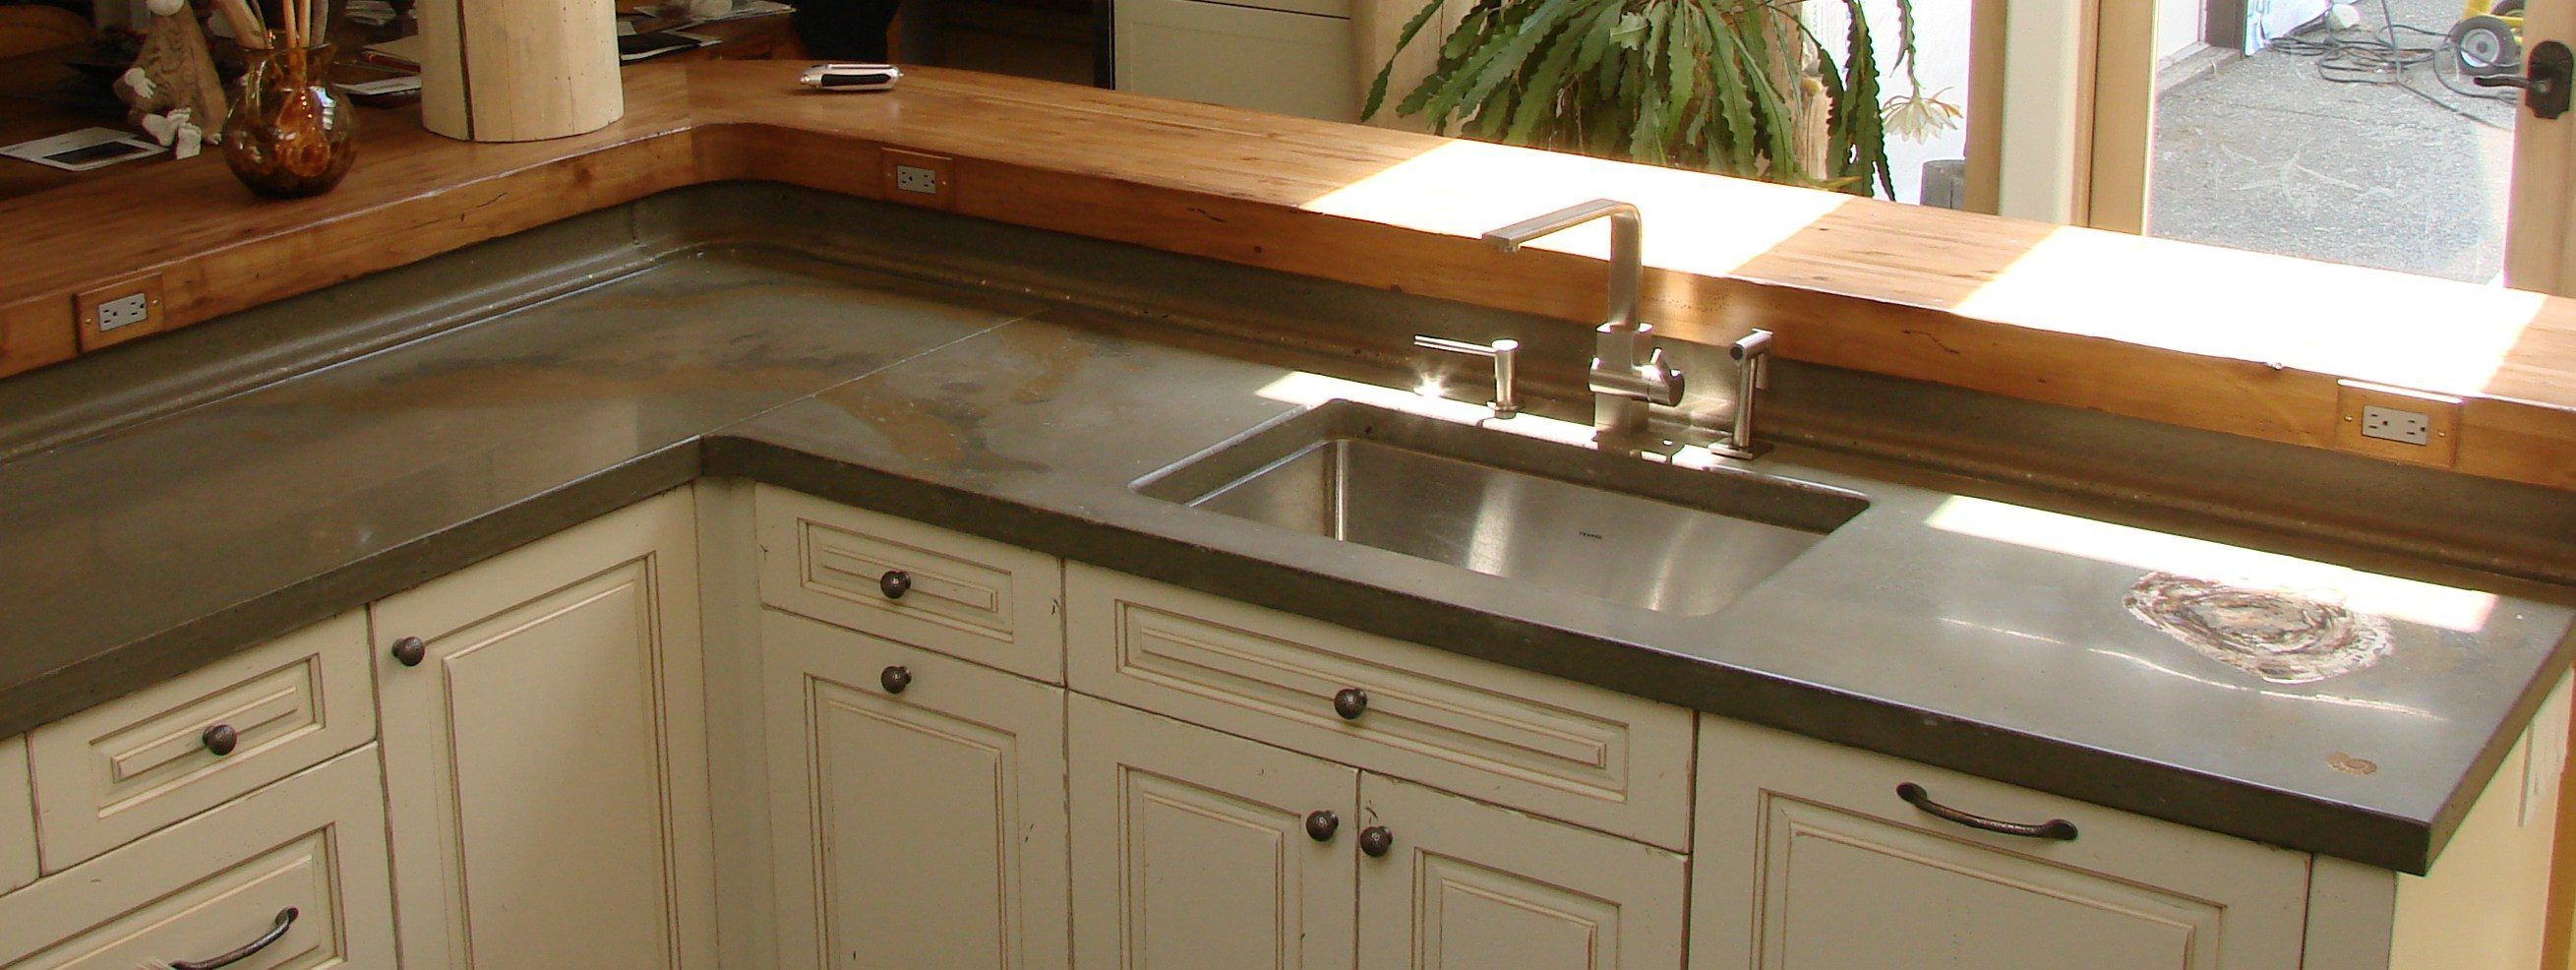 Keith Crewe Concrete Countertop